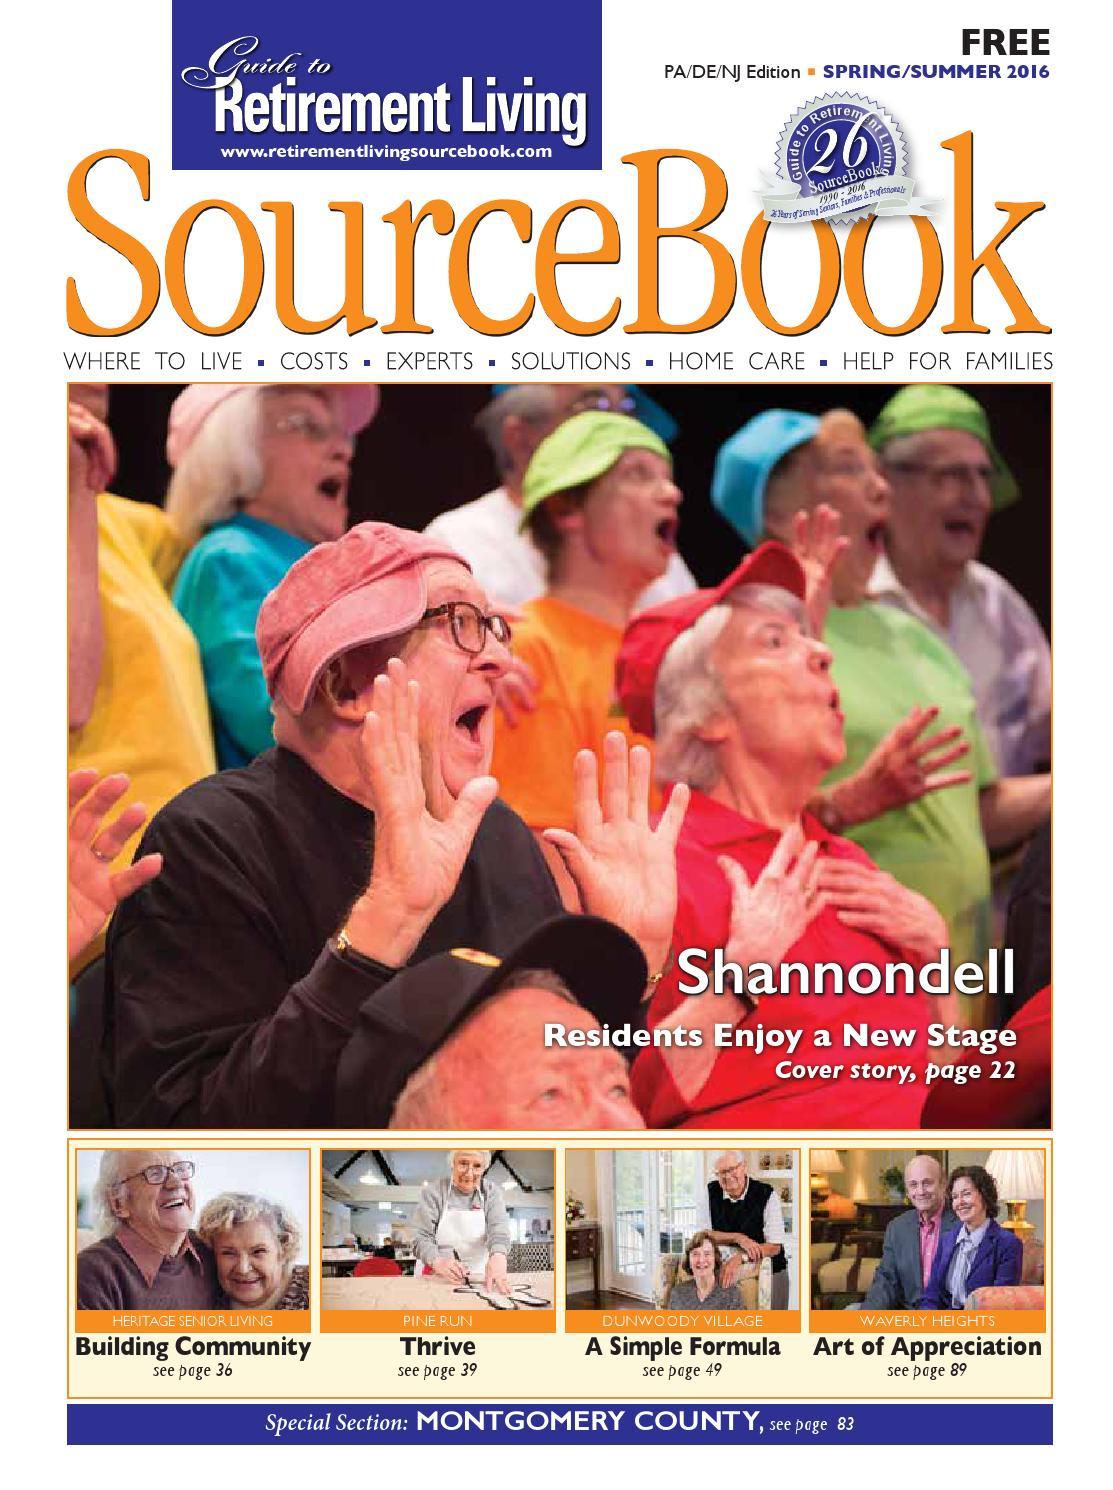 Grlsourcebook paspring2016Guide to Retirement Living SourceBook Delaware  Valley Issue Spring 2016 by Retirement Living Sourcebook - issuu